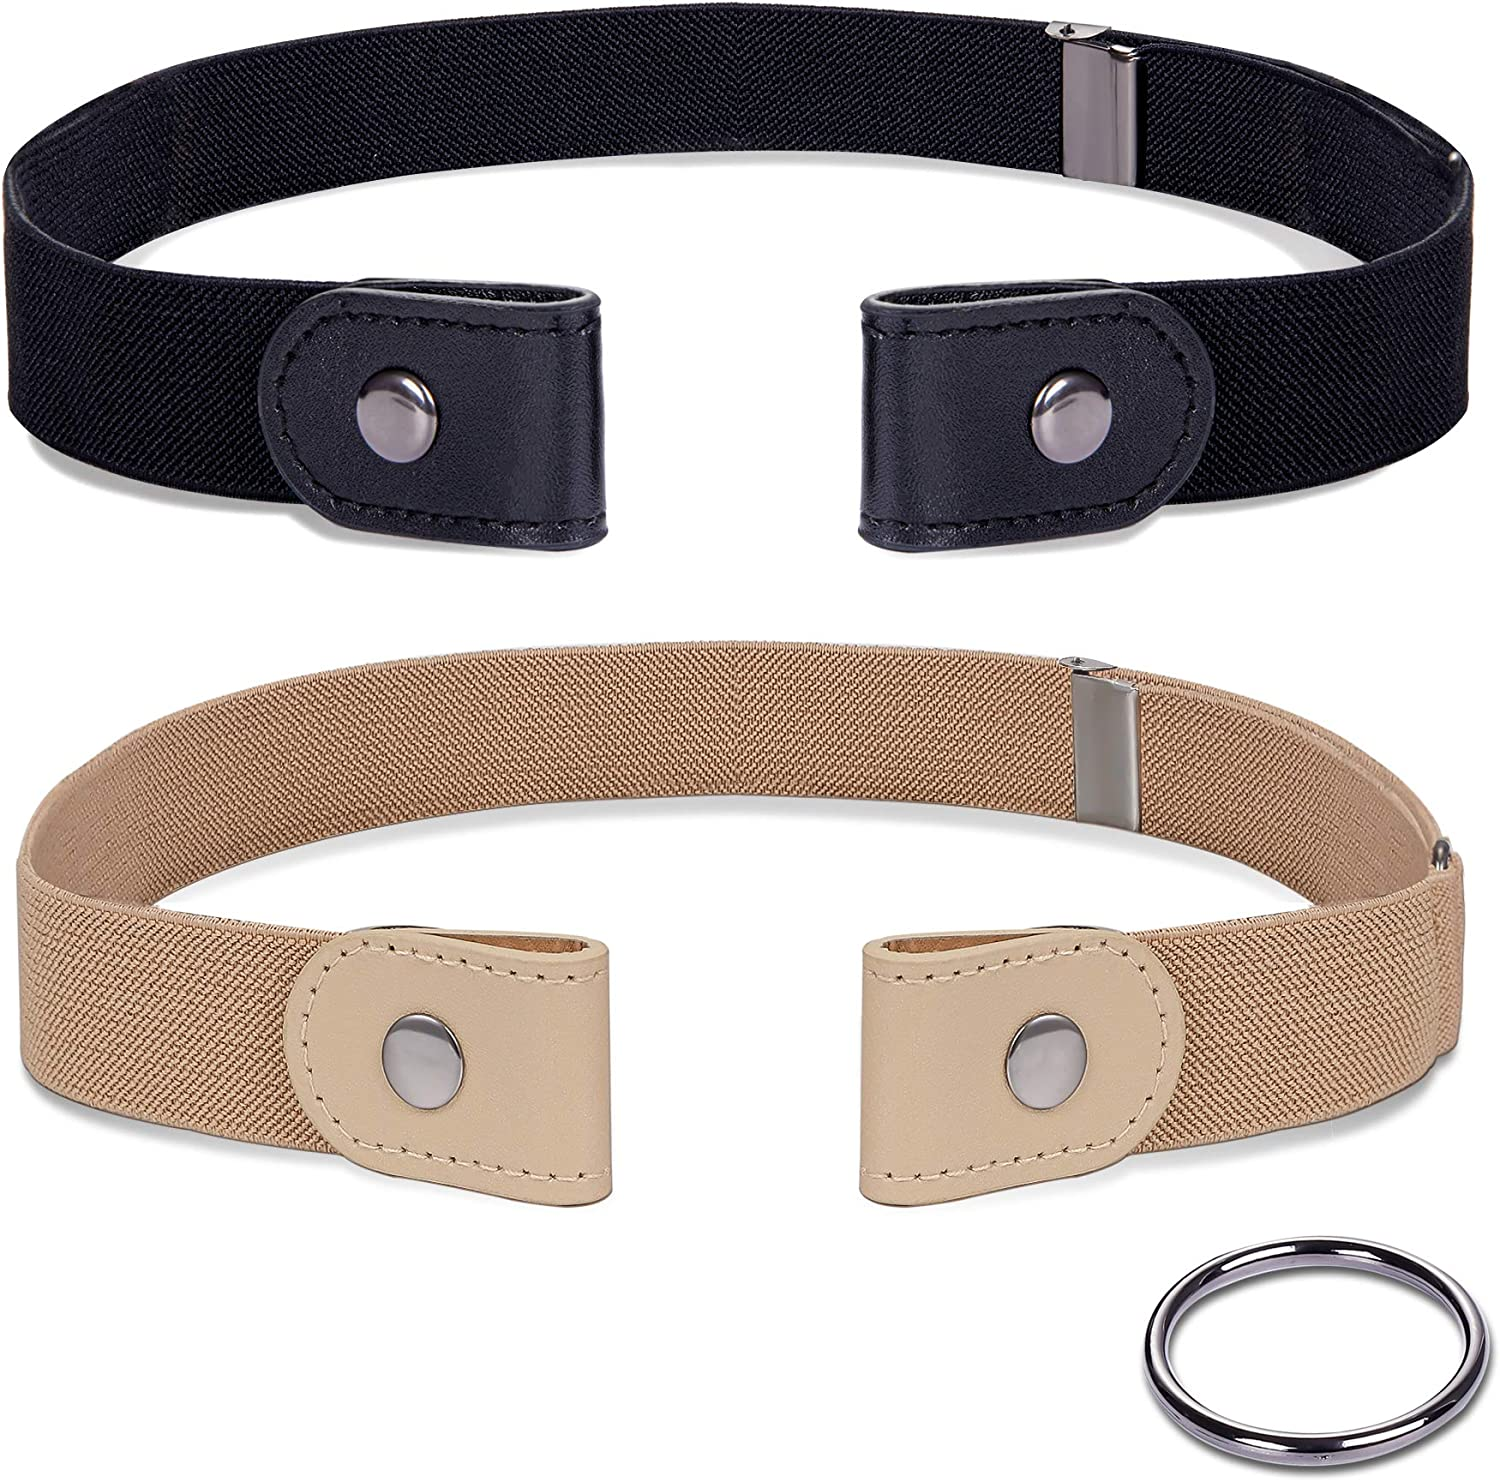 No Buckle Elastic Belts Albuquerque Purchase Mall for Women Men Size Plus Free Inv